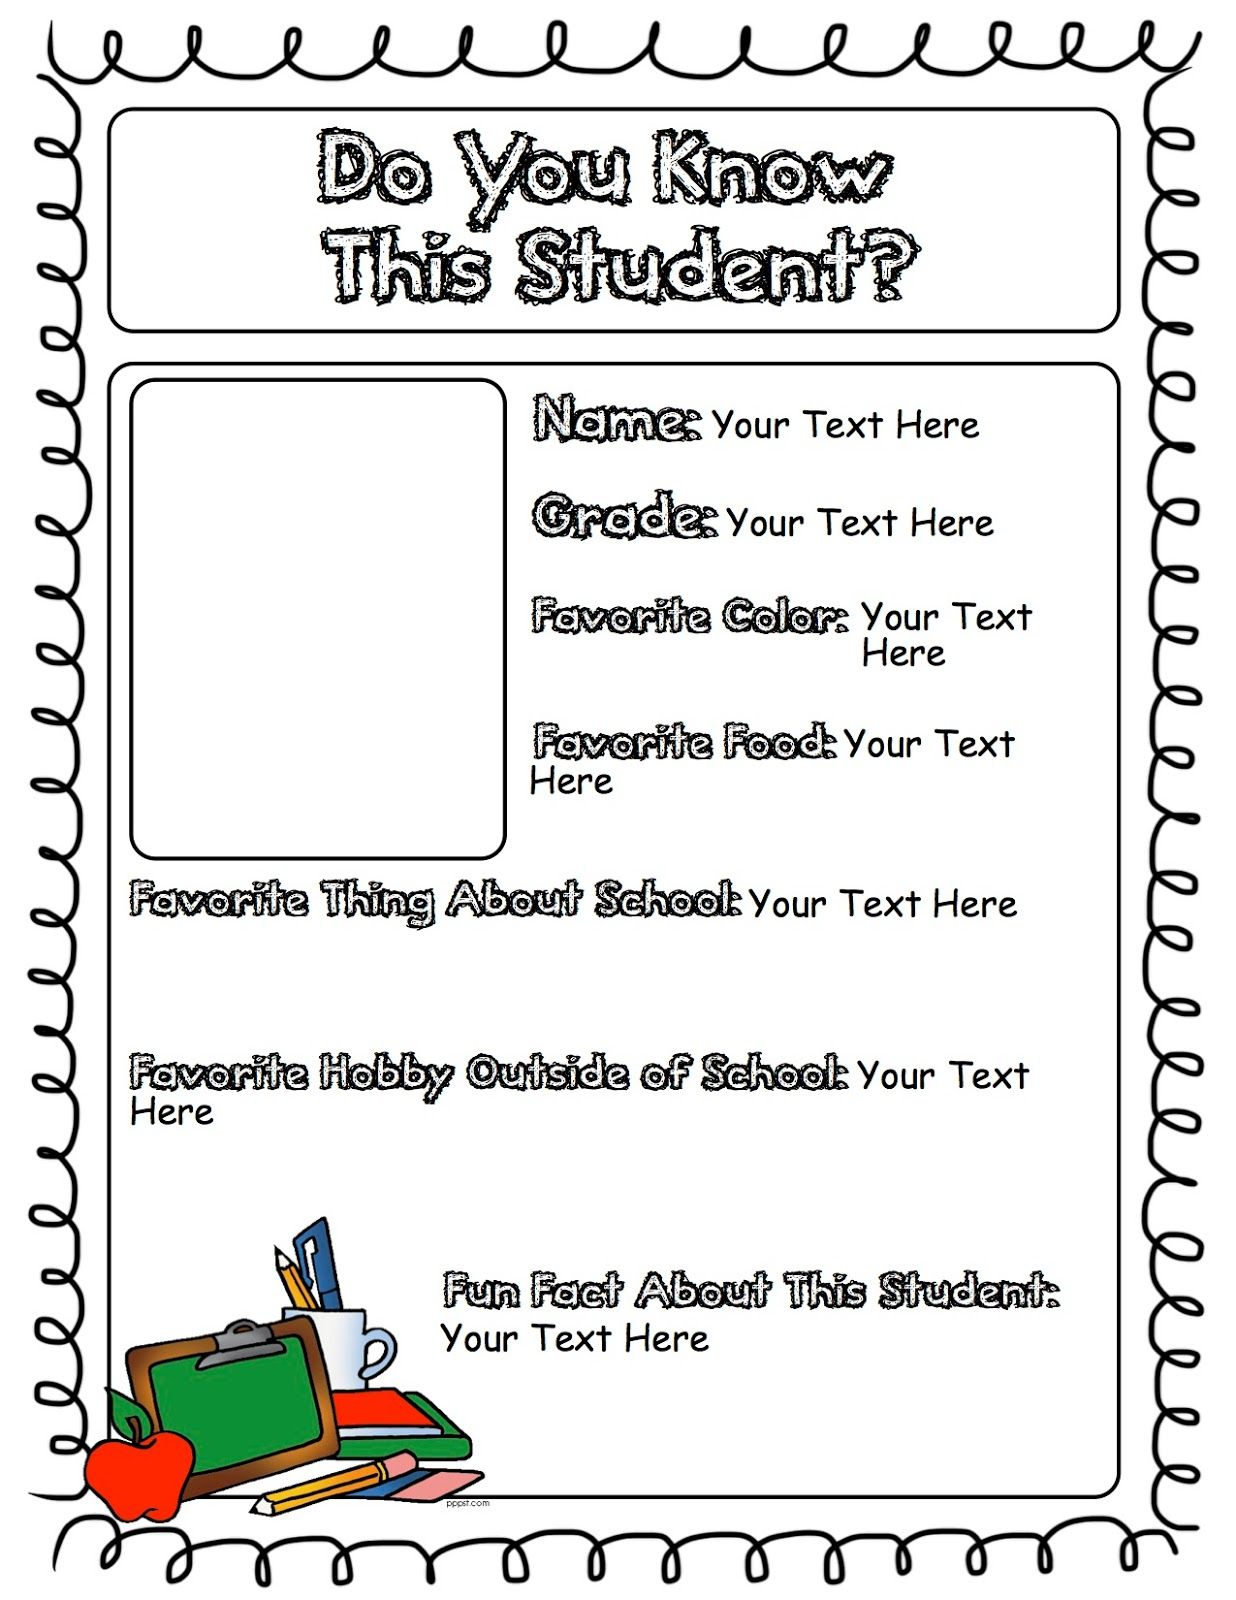 Student Newsletter Page Student Fun Facts Teaching [ 1600 x 1236 Pixel ]